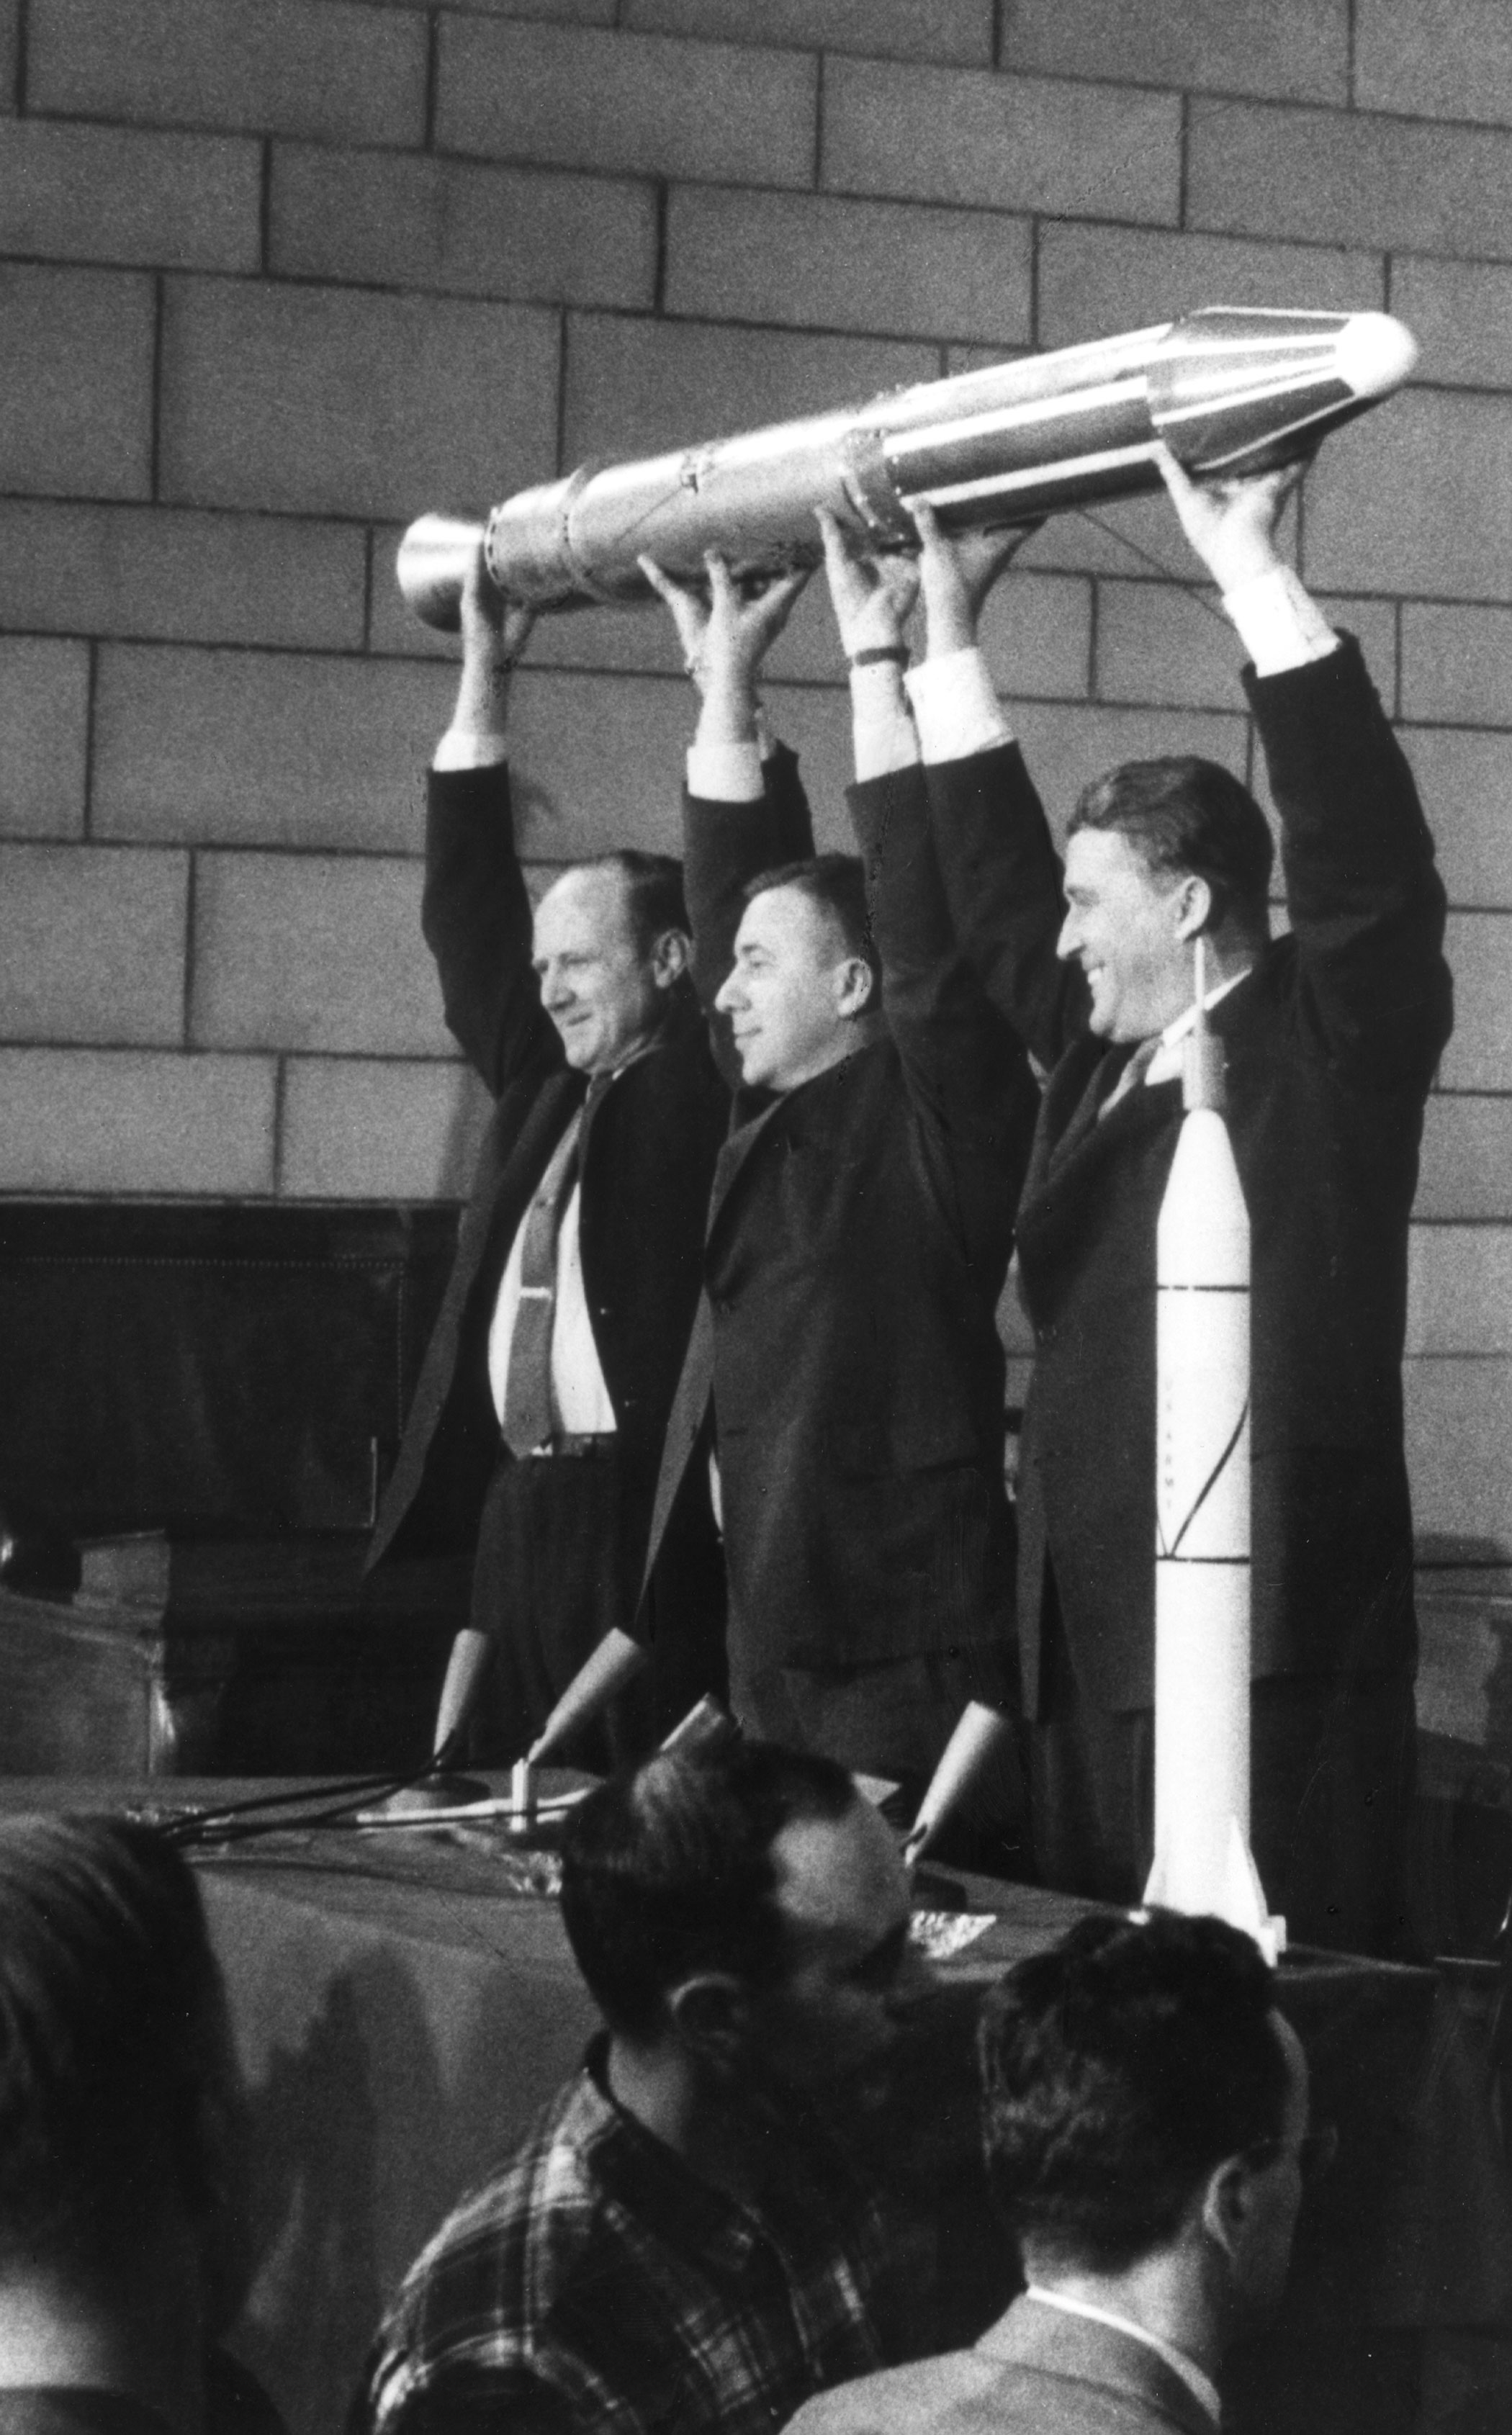 <b>Scientists with First U.S. Satellite Model, 1958</b>; William H, Pickering, James Van Allen, And Wernher Von Braun triumphantly raising a full-size model of the first U.S, Satellite, Explorer 1, at a press conference following the craft's launch on Jan. 31, 1958